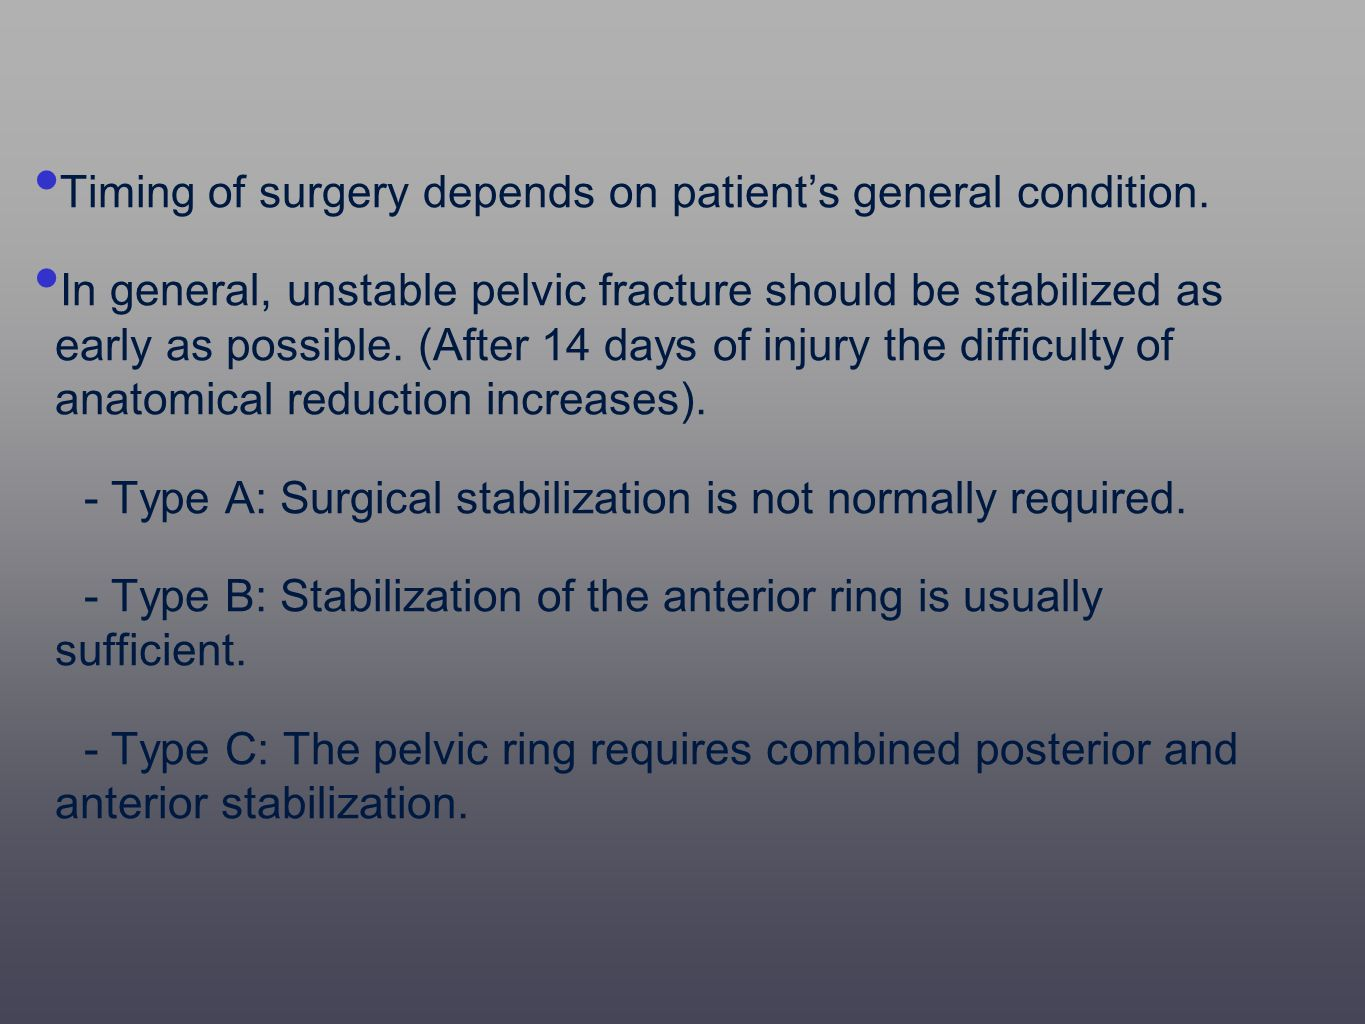 Timing of surgery depends on patient's general condition.